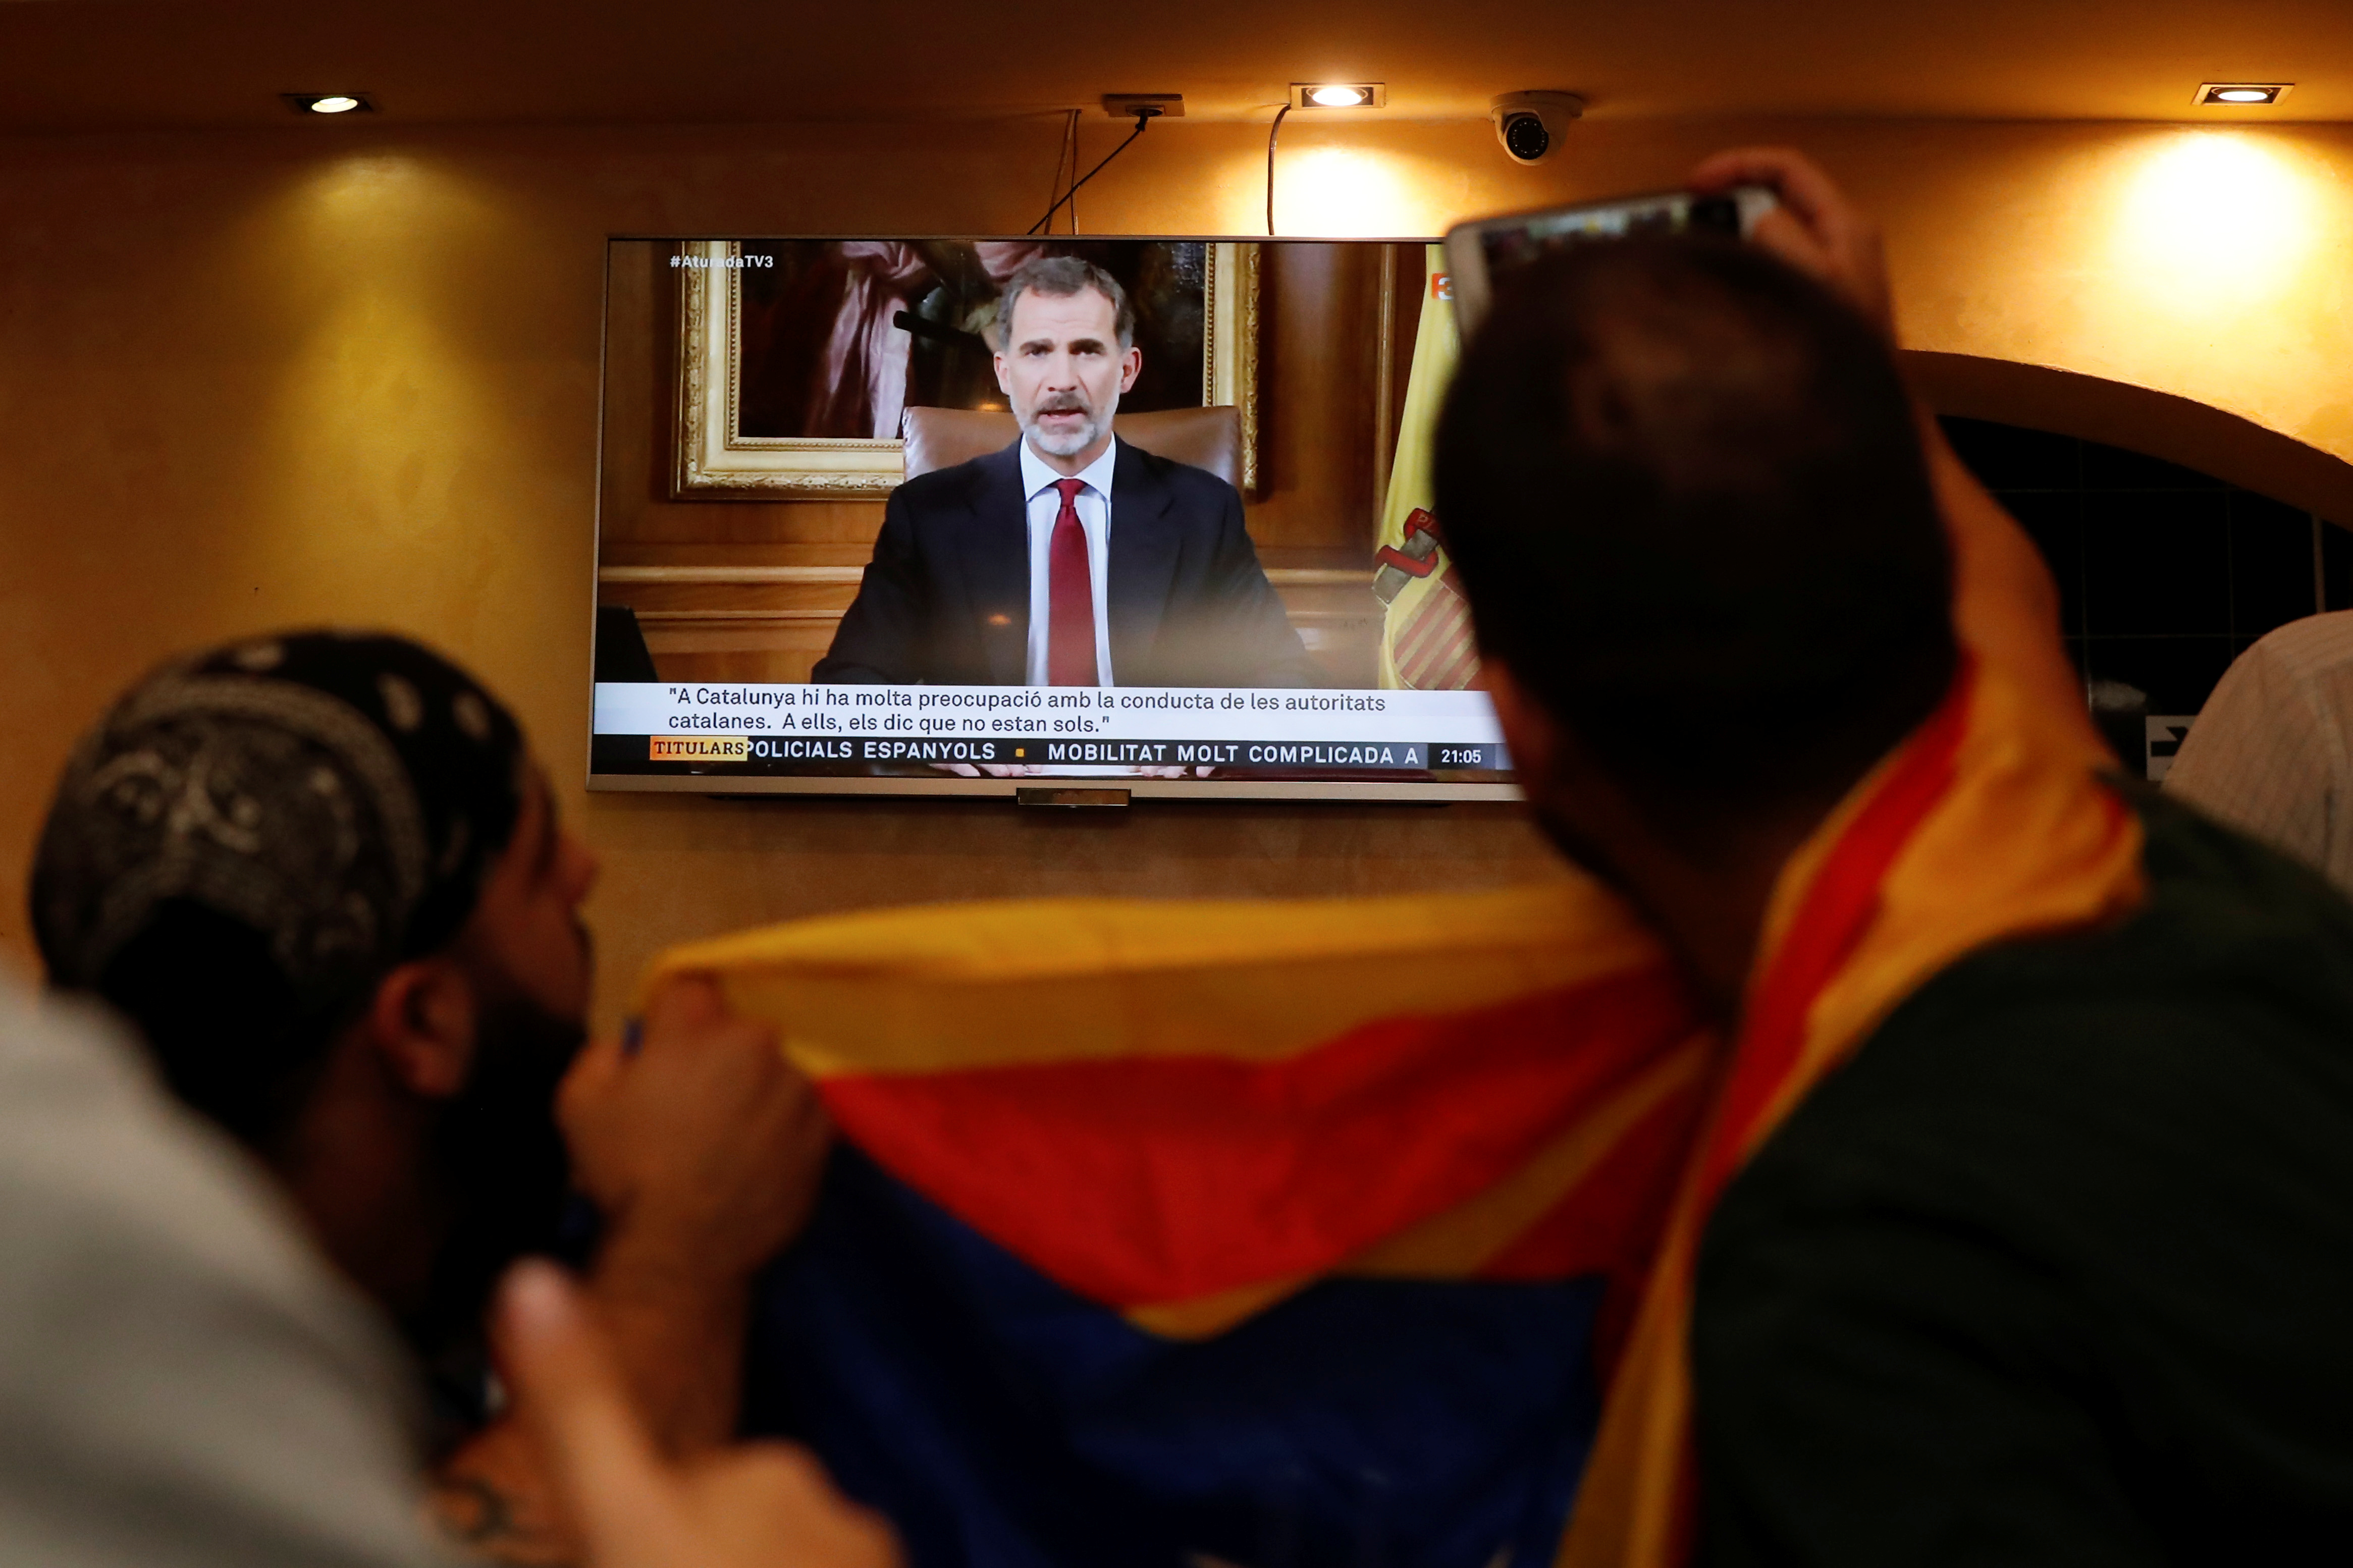 Spanish leftist politicians call on Spain PM to resign over Catalonia